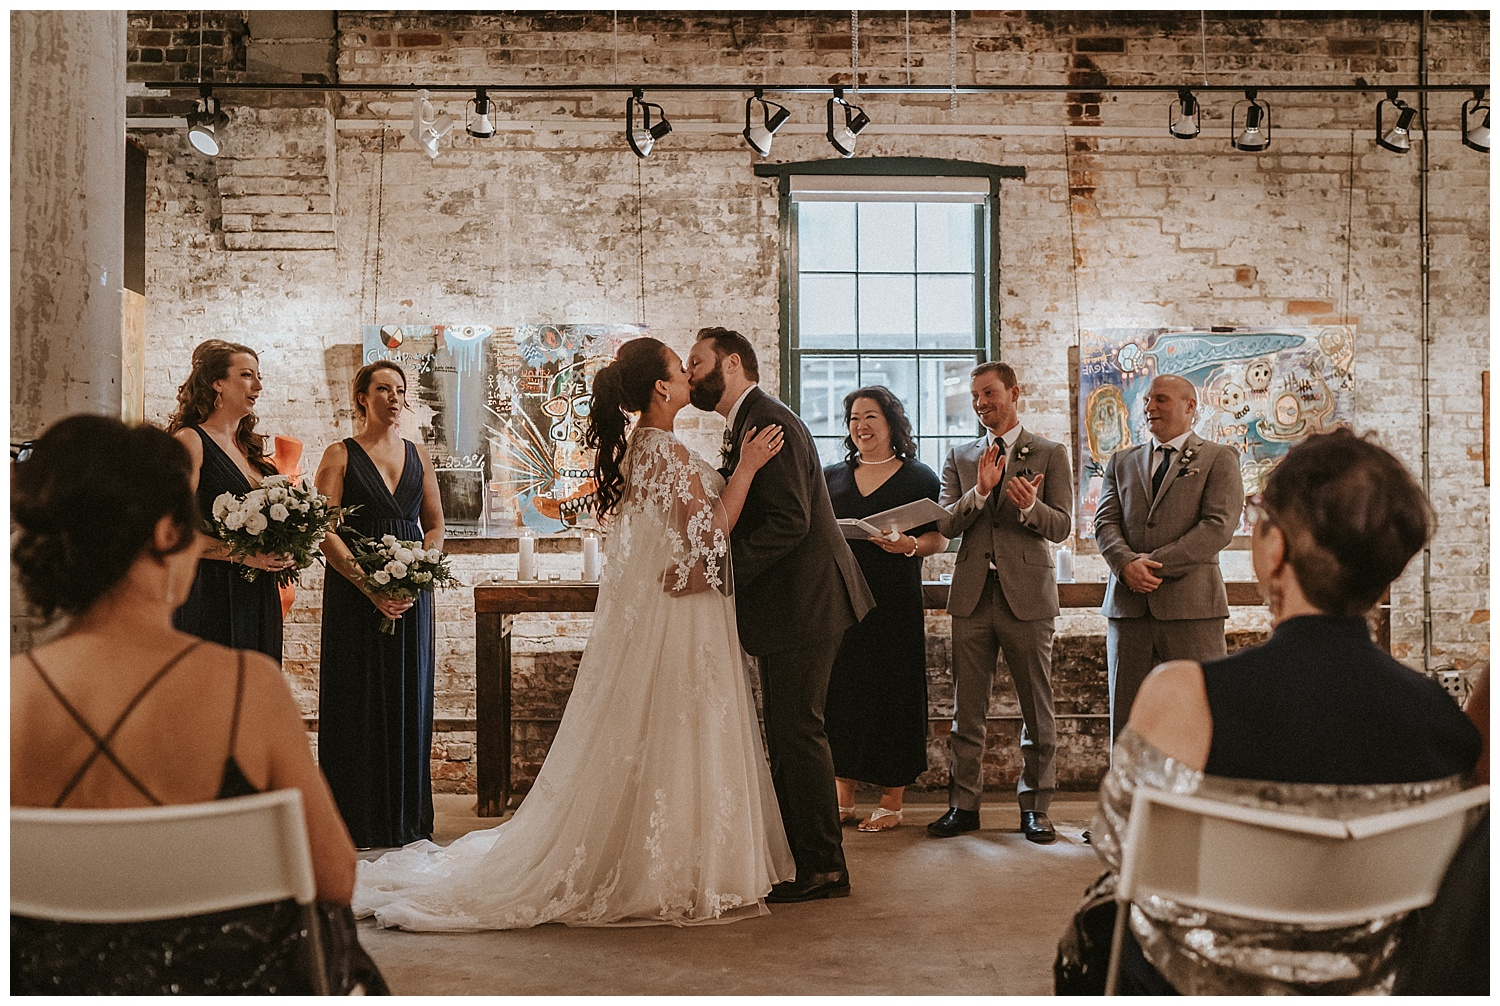 Katie Marie Photography | Archeo Wedding Arta Gallery Wedding | Distillery District Wedding | Toronto Wedding Photographer | Hamilton Toronto Ontario Wedding Photographer |_0109.jpg